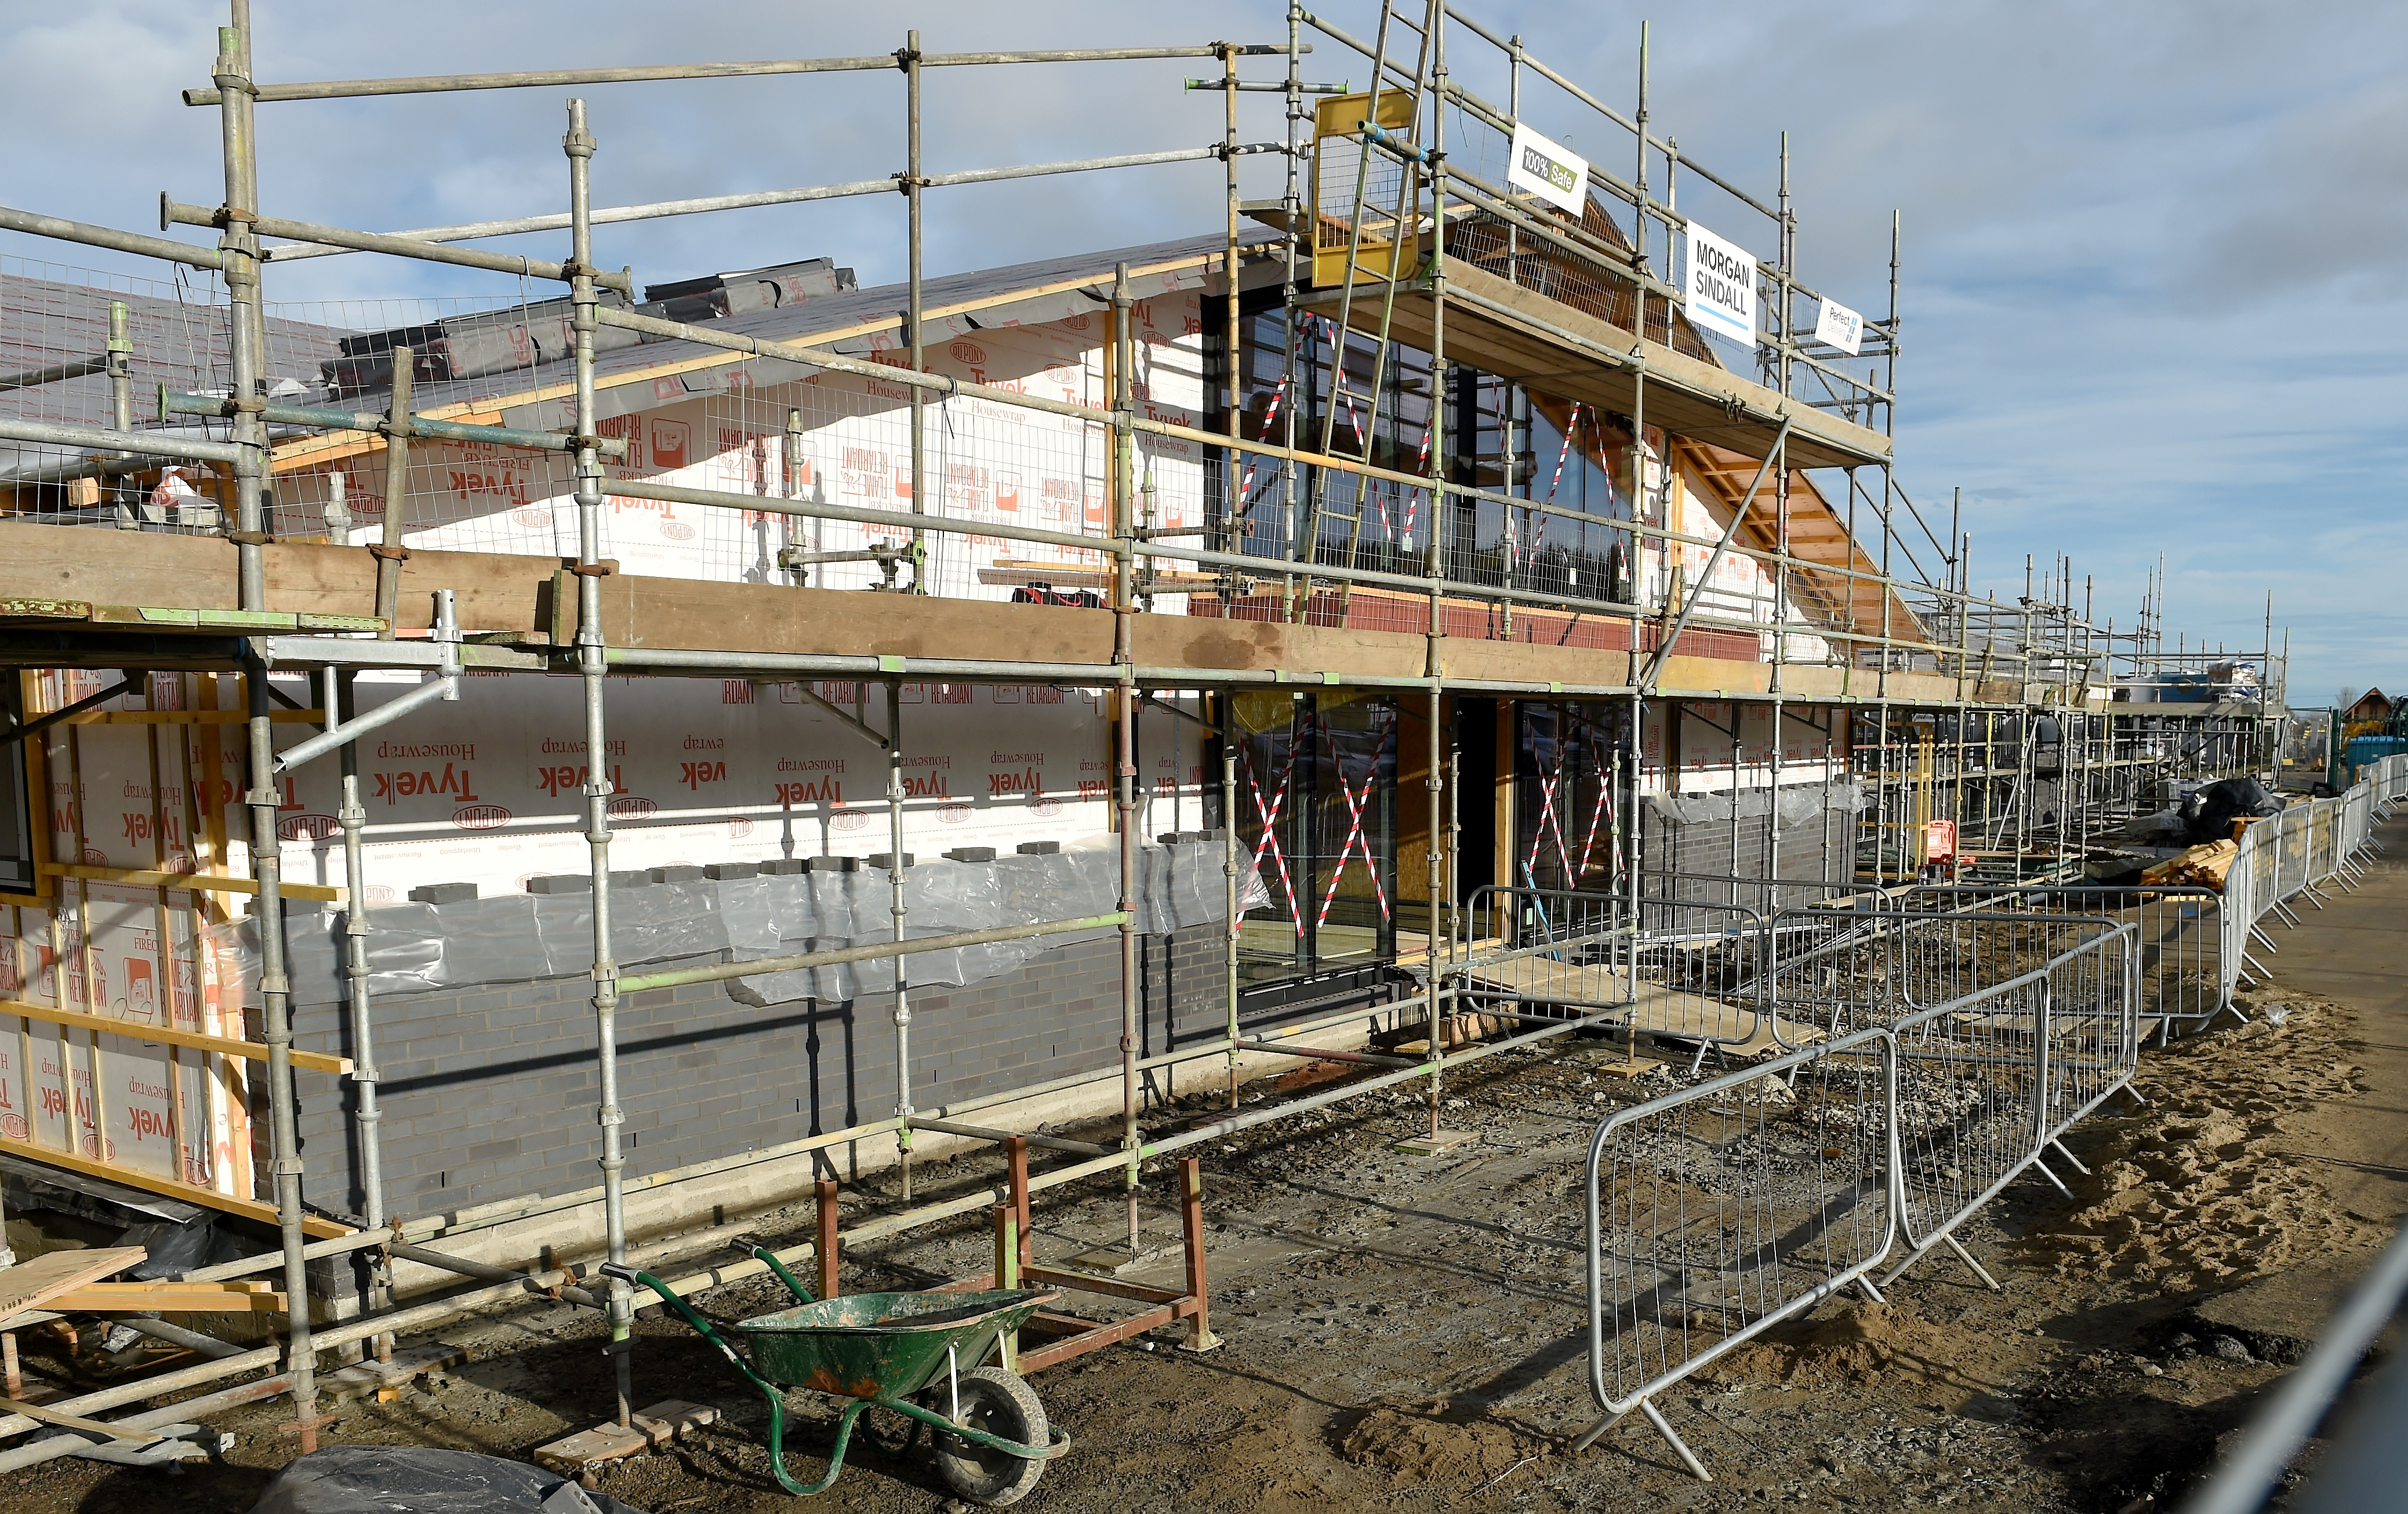 Smithton Primary School is currently undergoing a major refurbishment and extension.